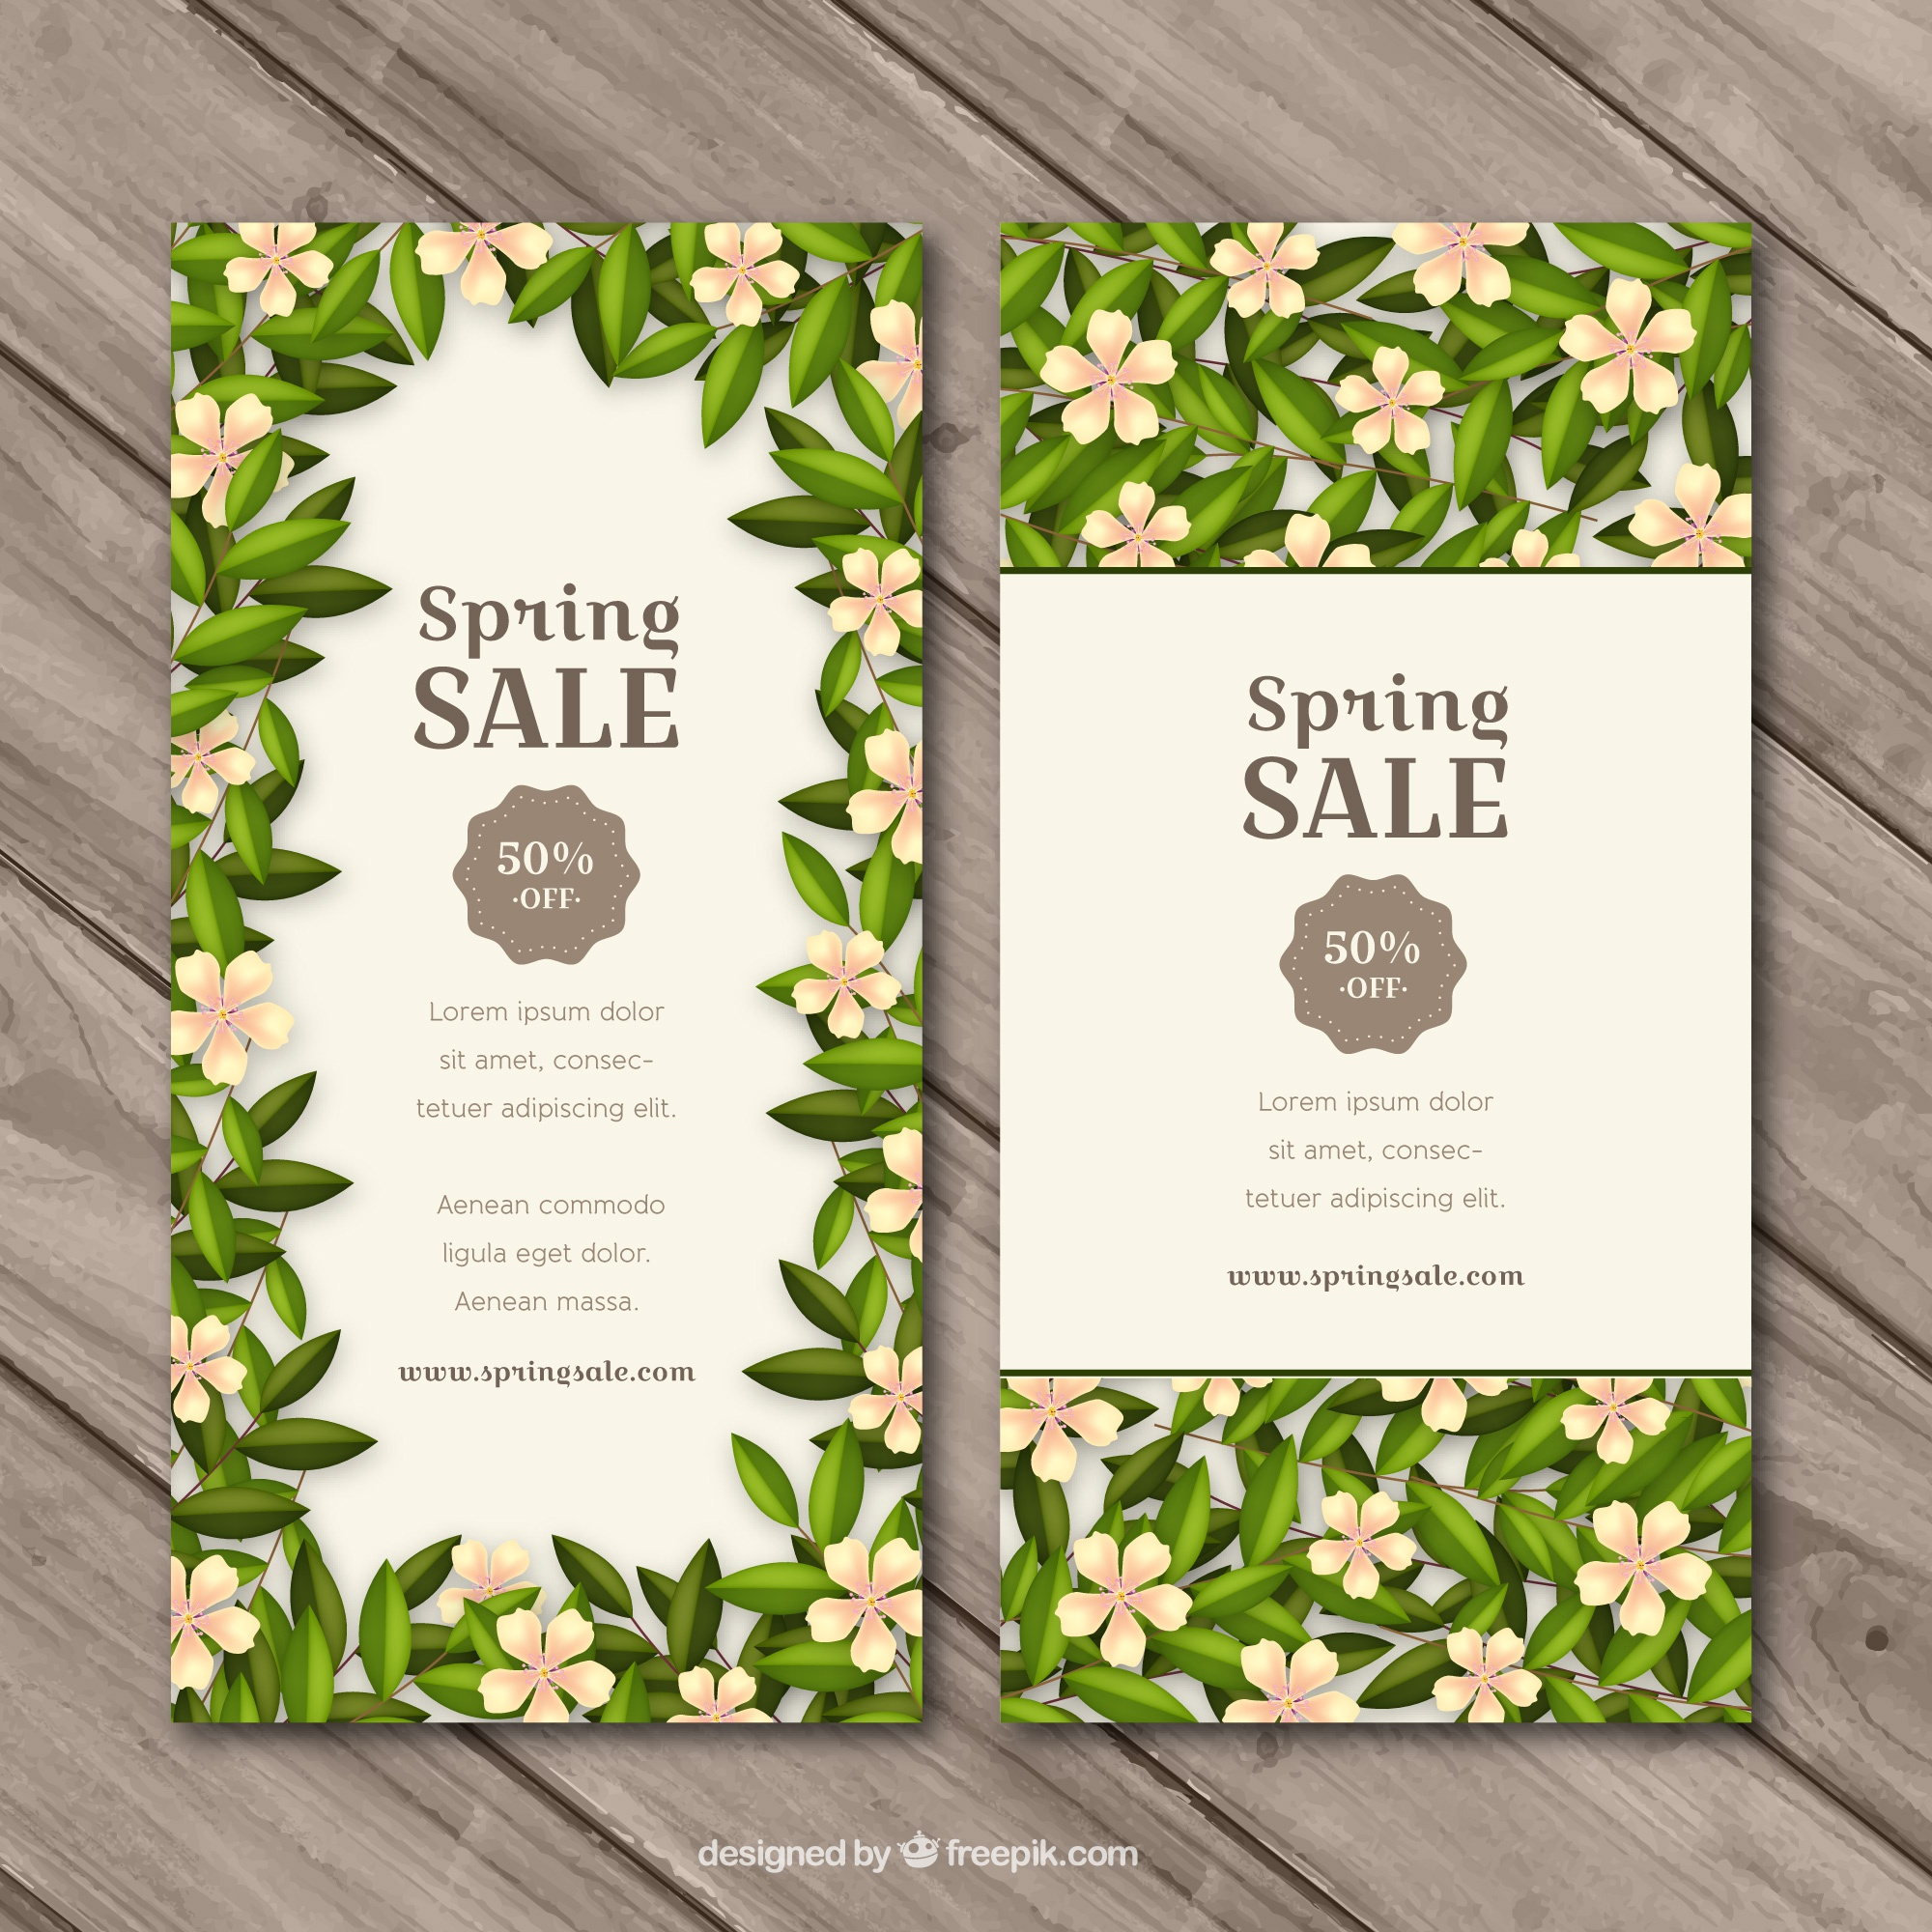 Floral banners for spring sale